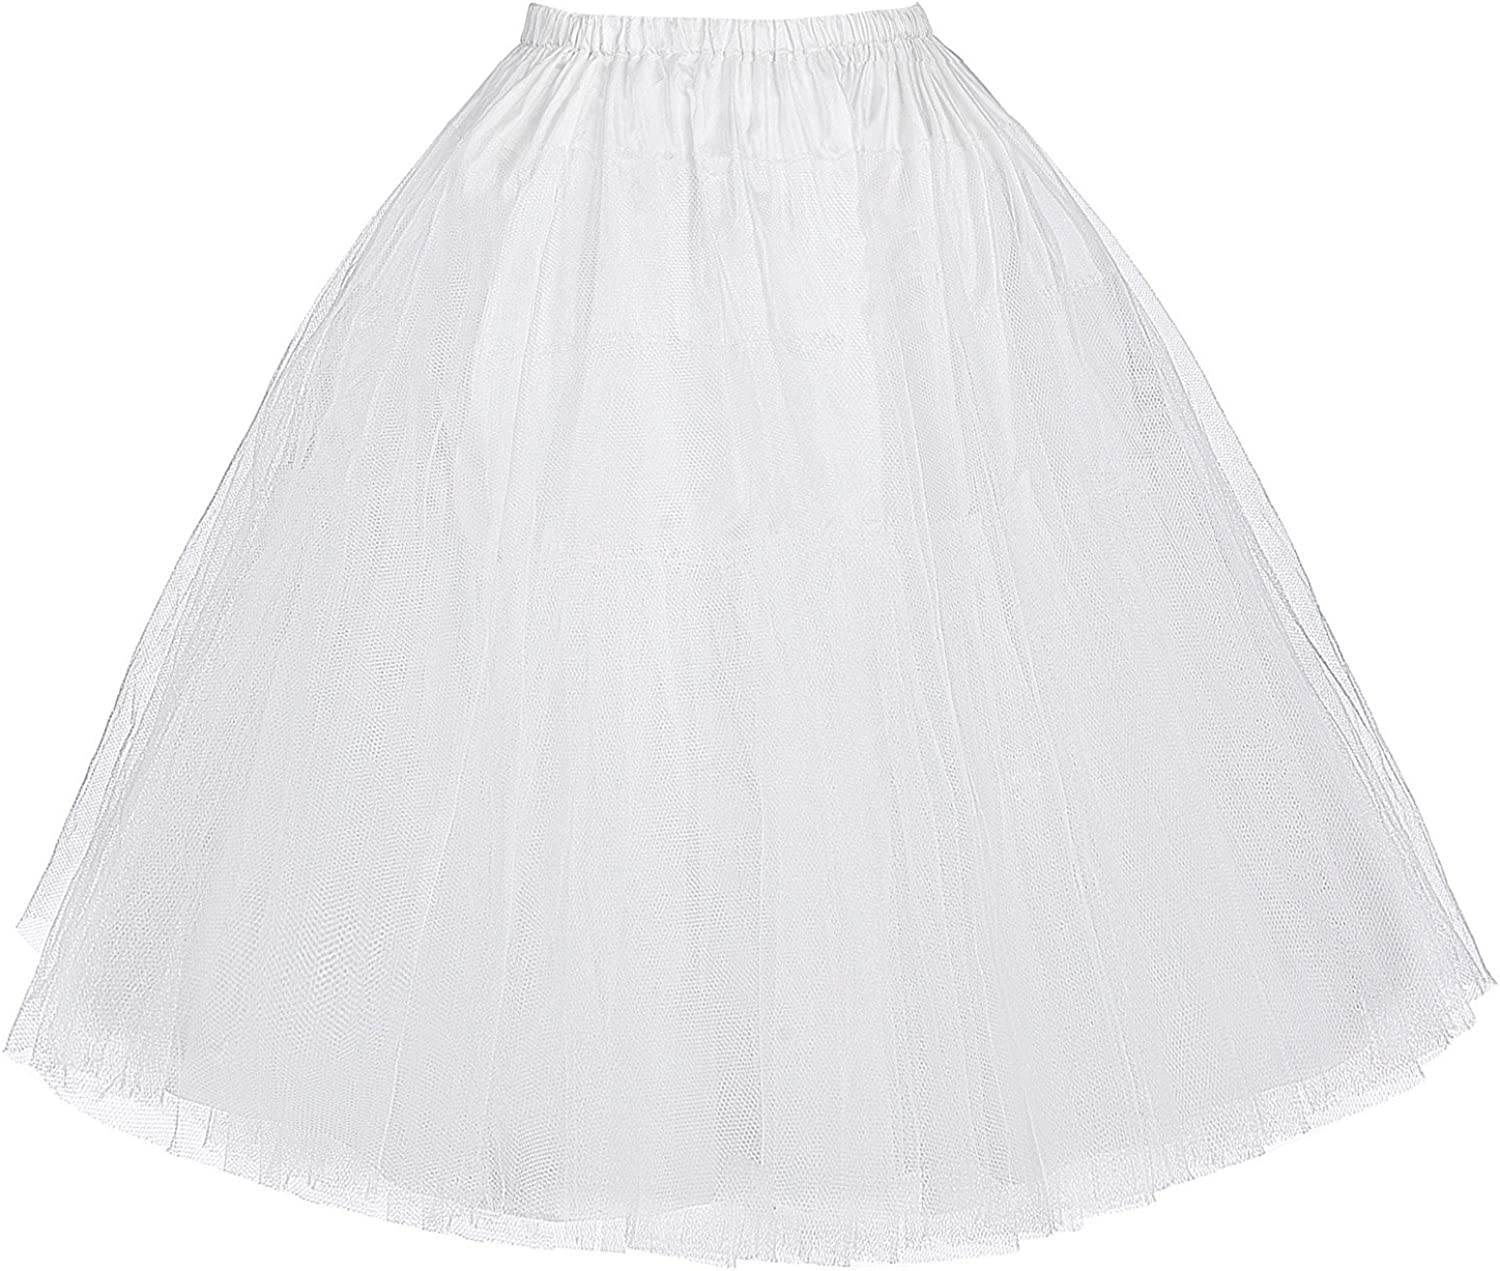 GK-Factory Store Vintage Womens 50s Rockabilly Tutu Skirt Petticoat 3 Layers Multi Colored